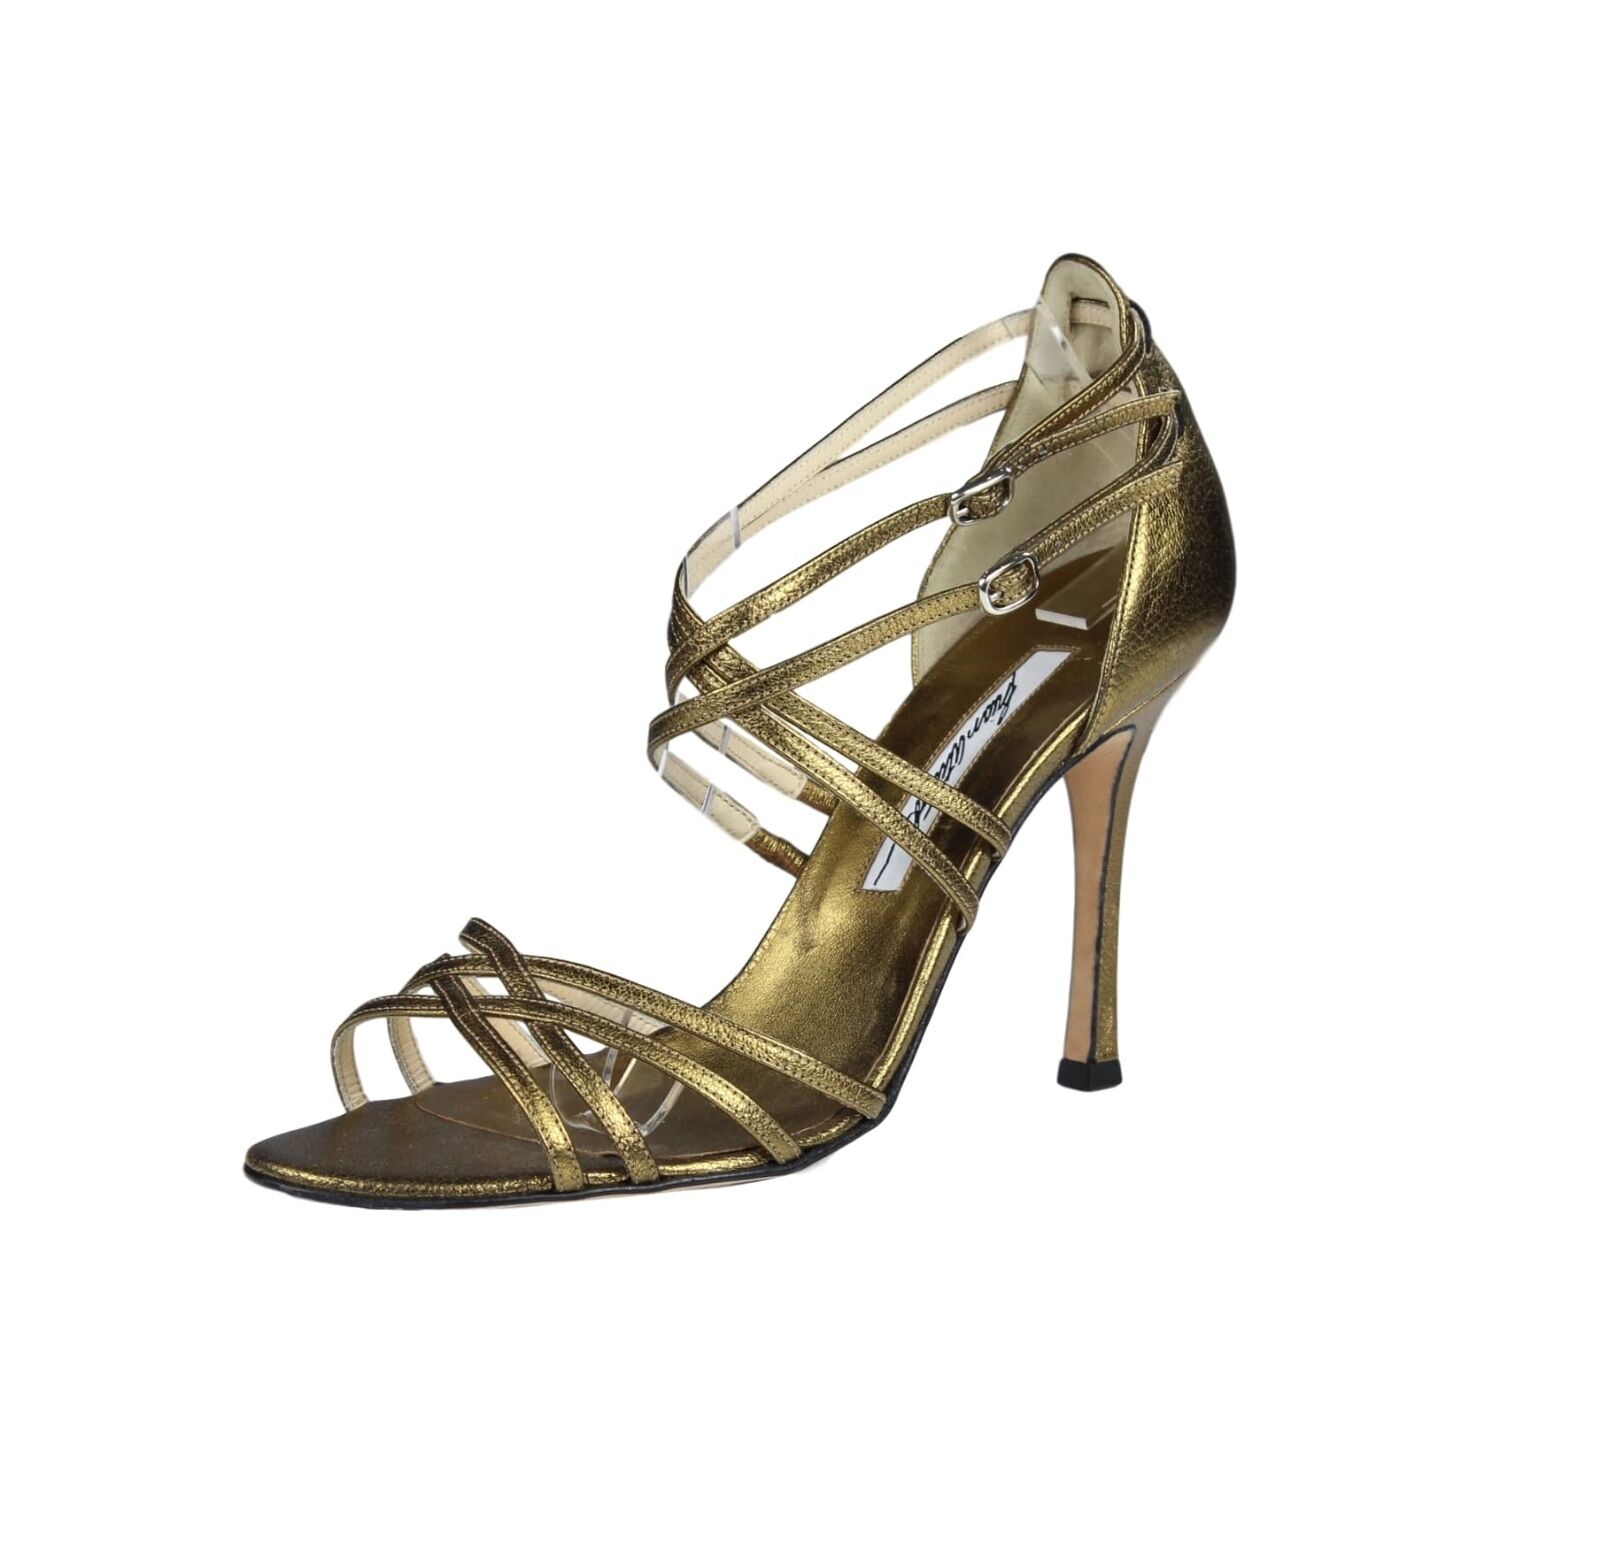 Brian Atwood Metallic gold Strappy Leather Open-Toe Heels - Size 38, US 8